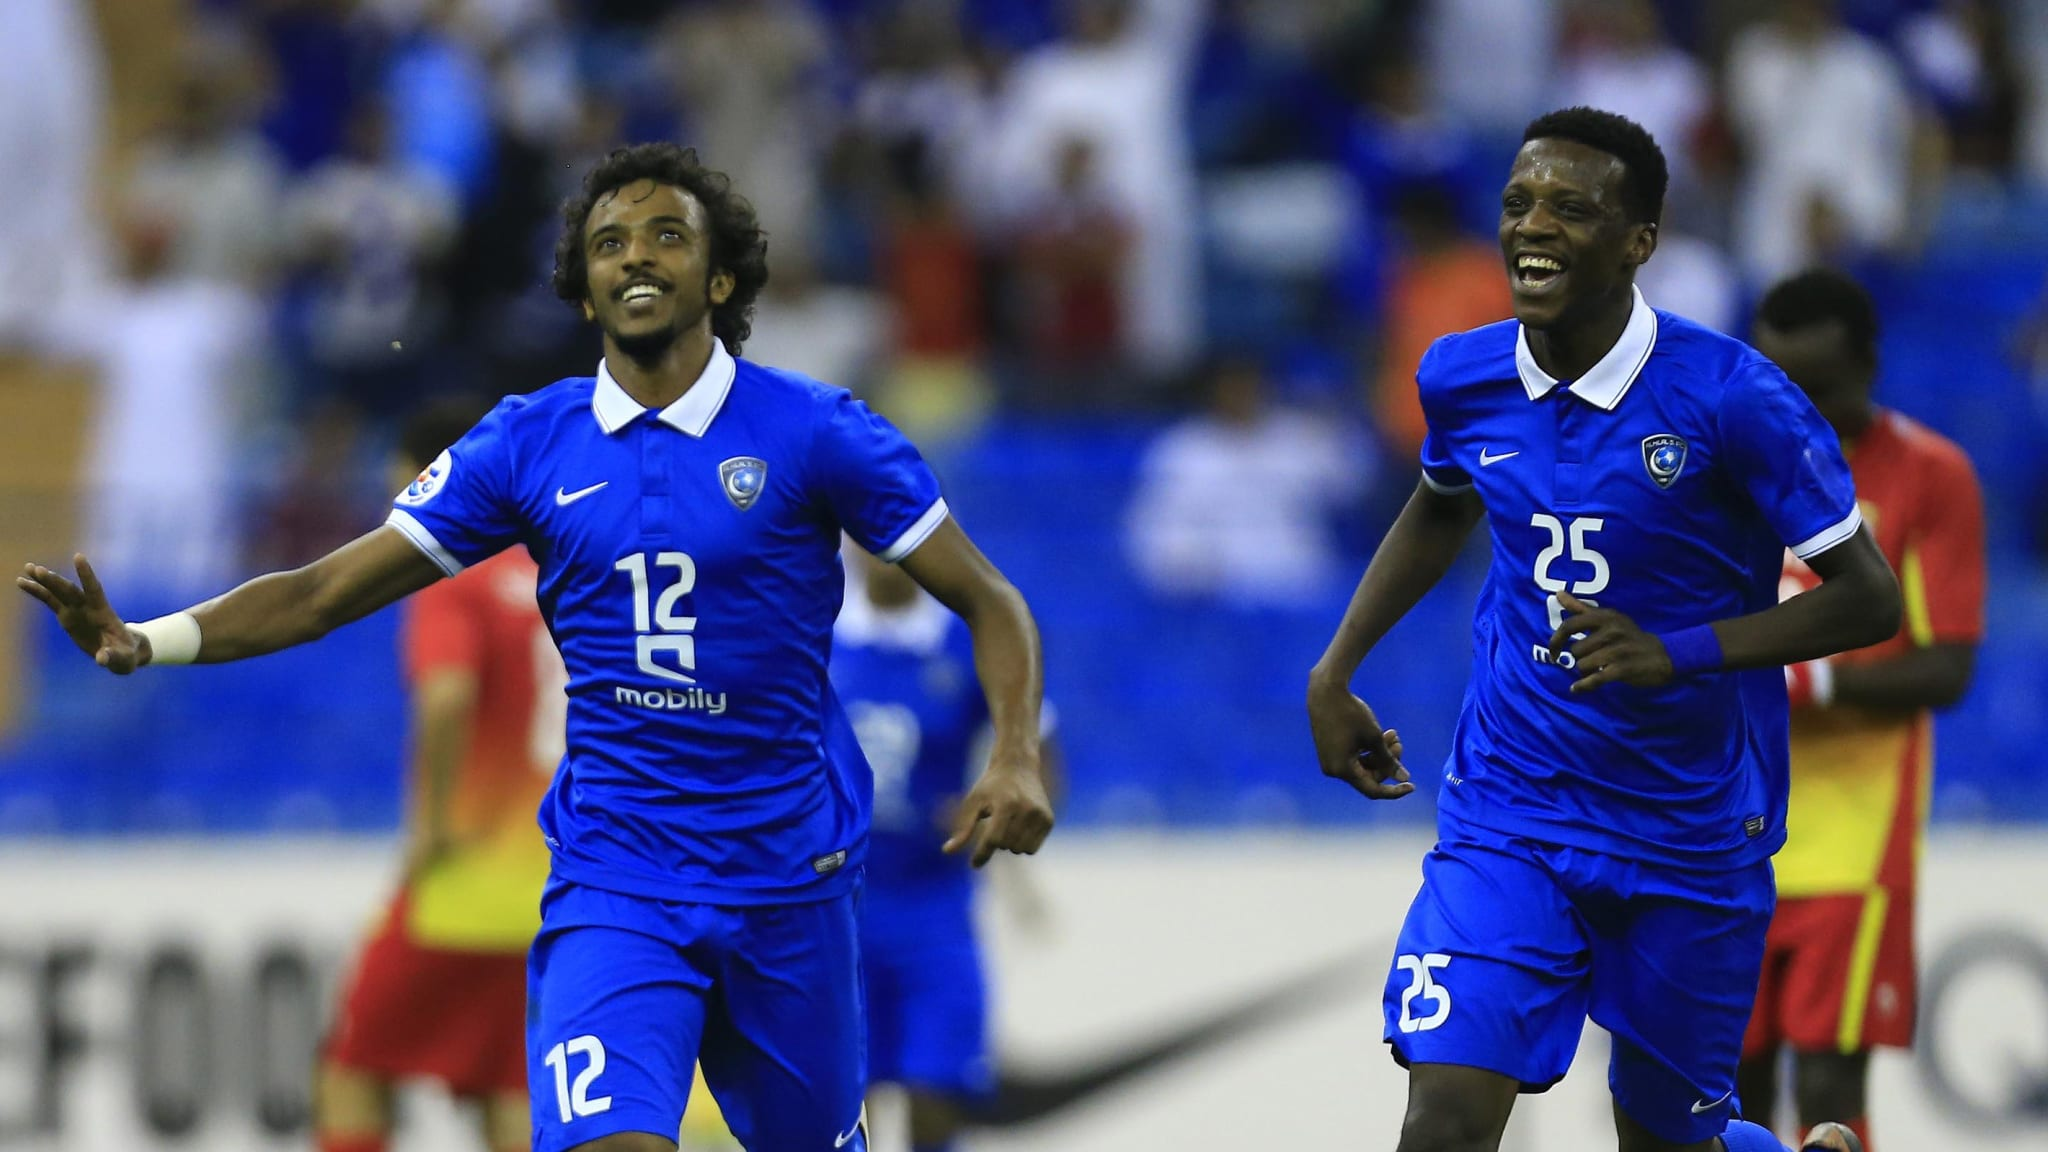 Al-Hilal's defender Yasser Al-Shahrani reacts after scoring against Foolad